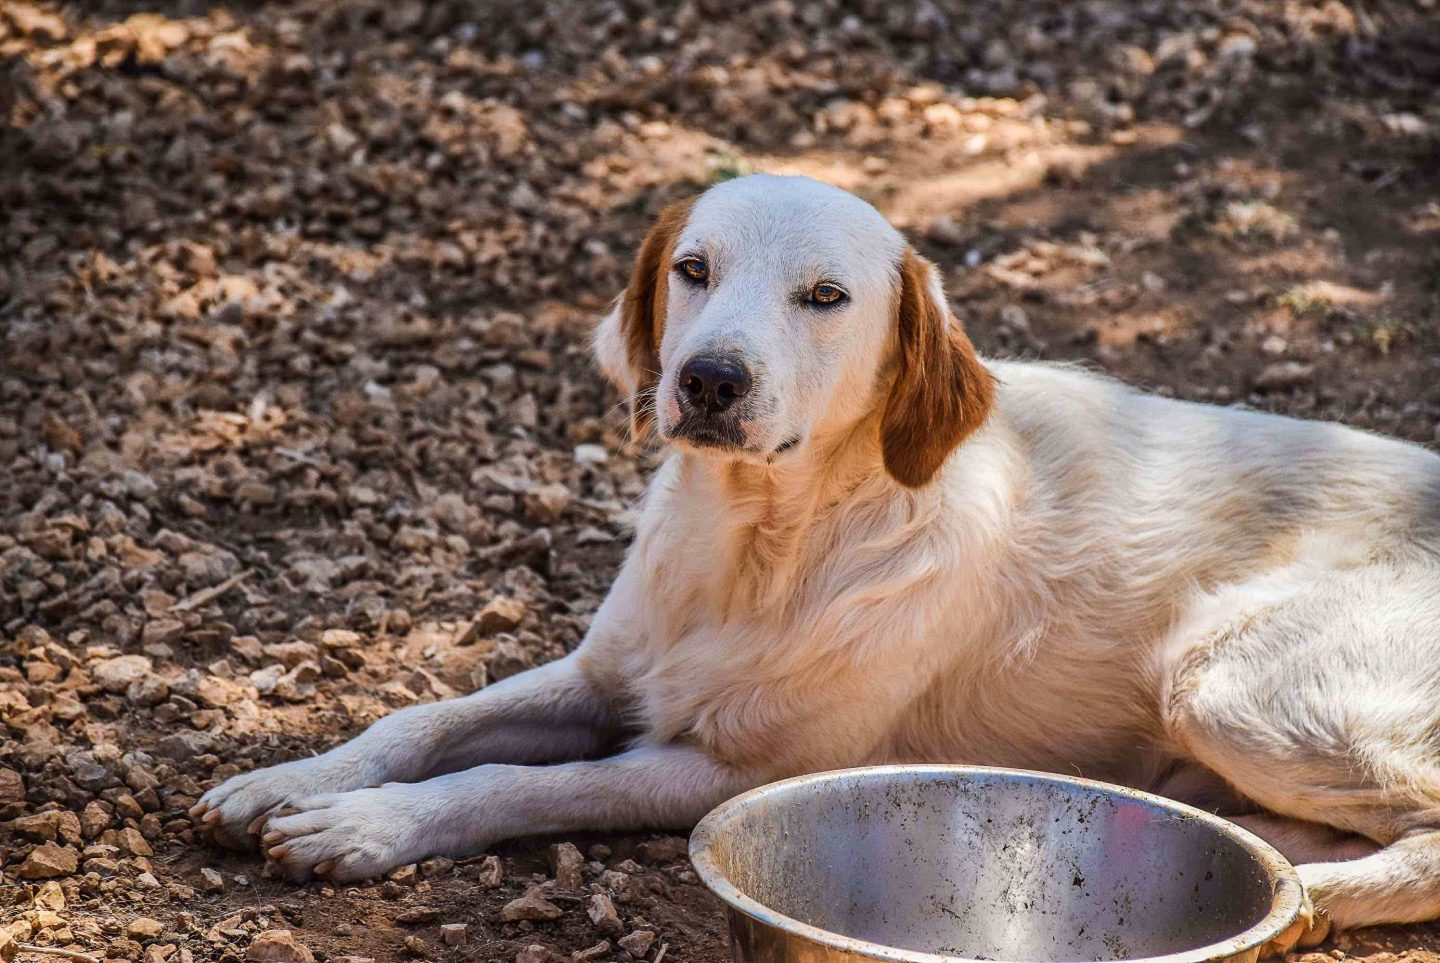 Animal Rescue Kefalonia Monthly Food Club - Feed Them All